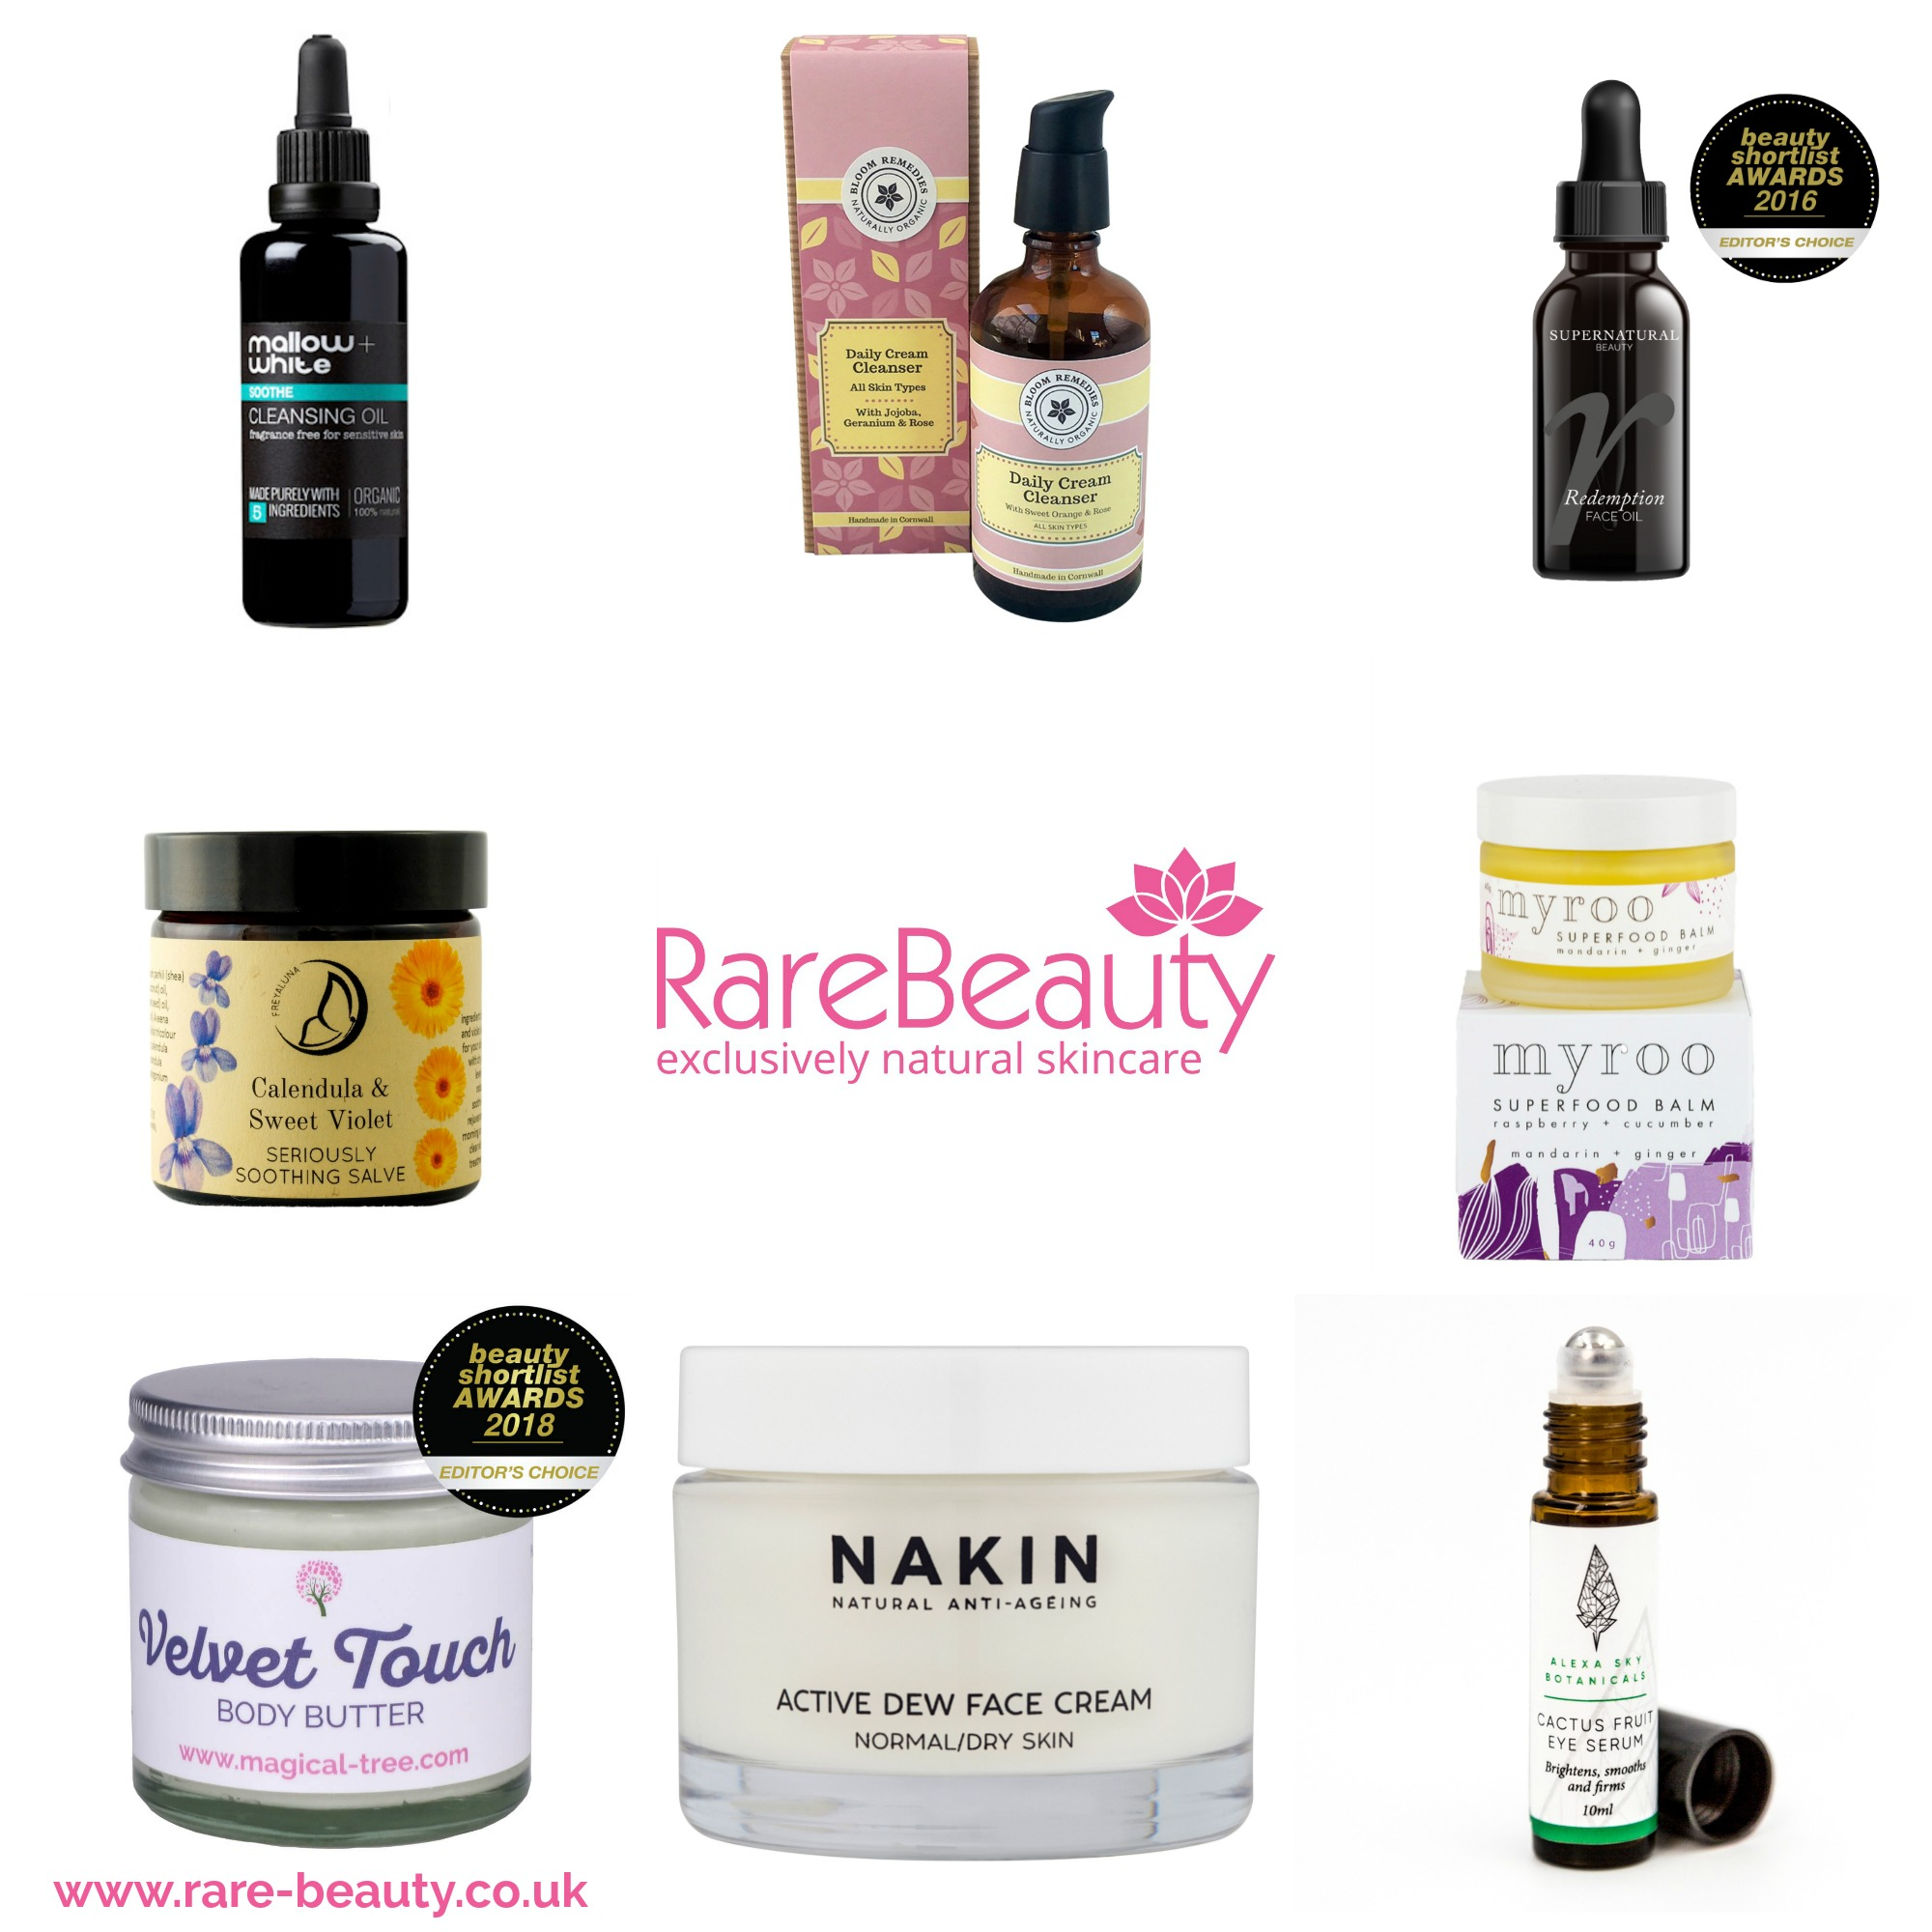 Natural and organic skincare products featured on Rare Beauty